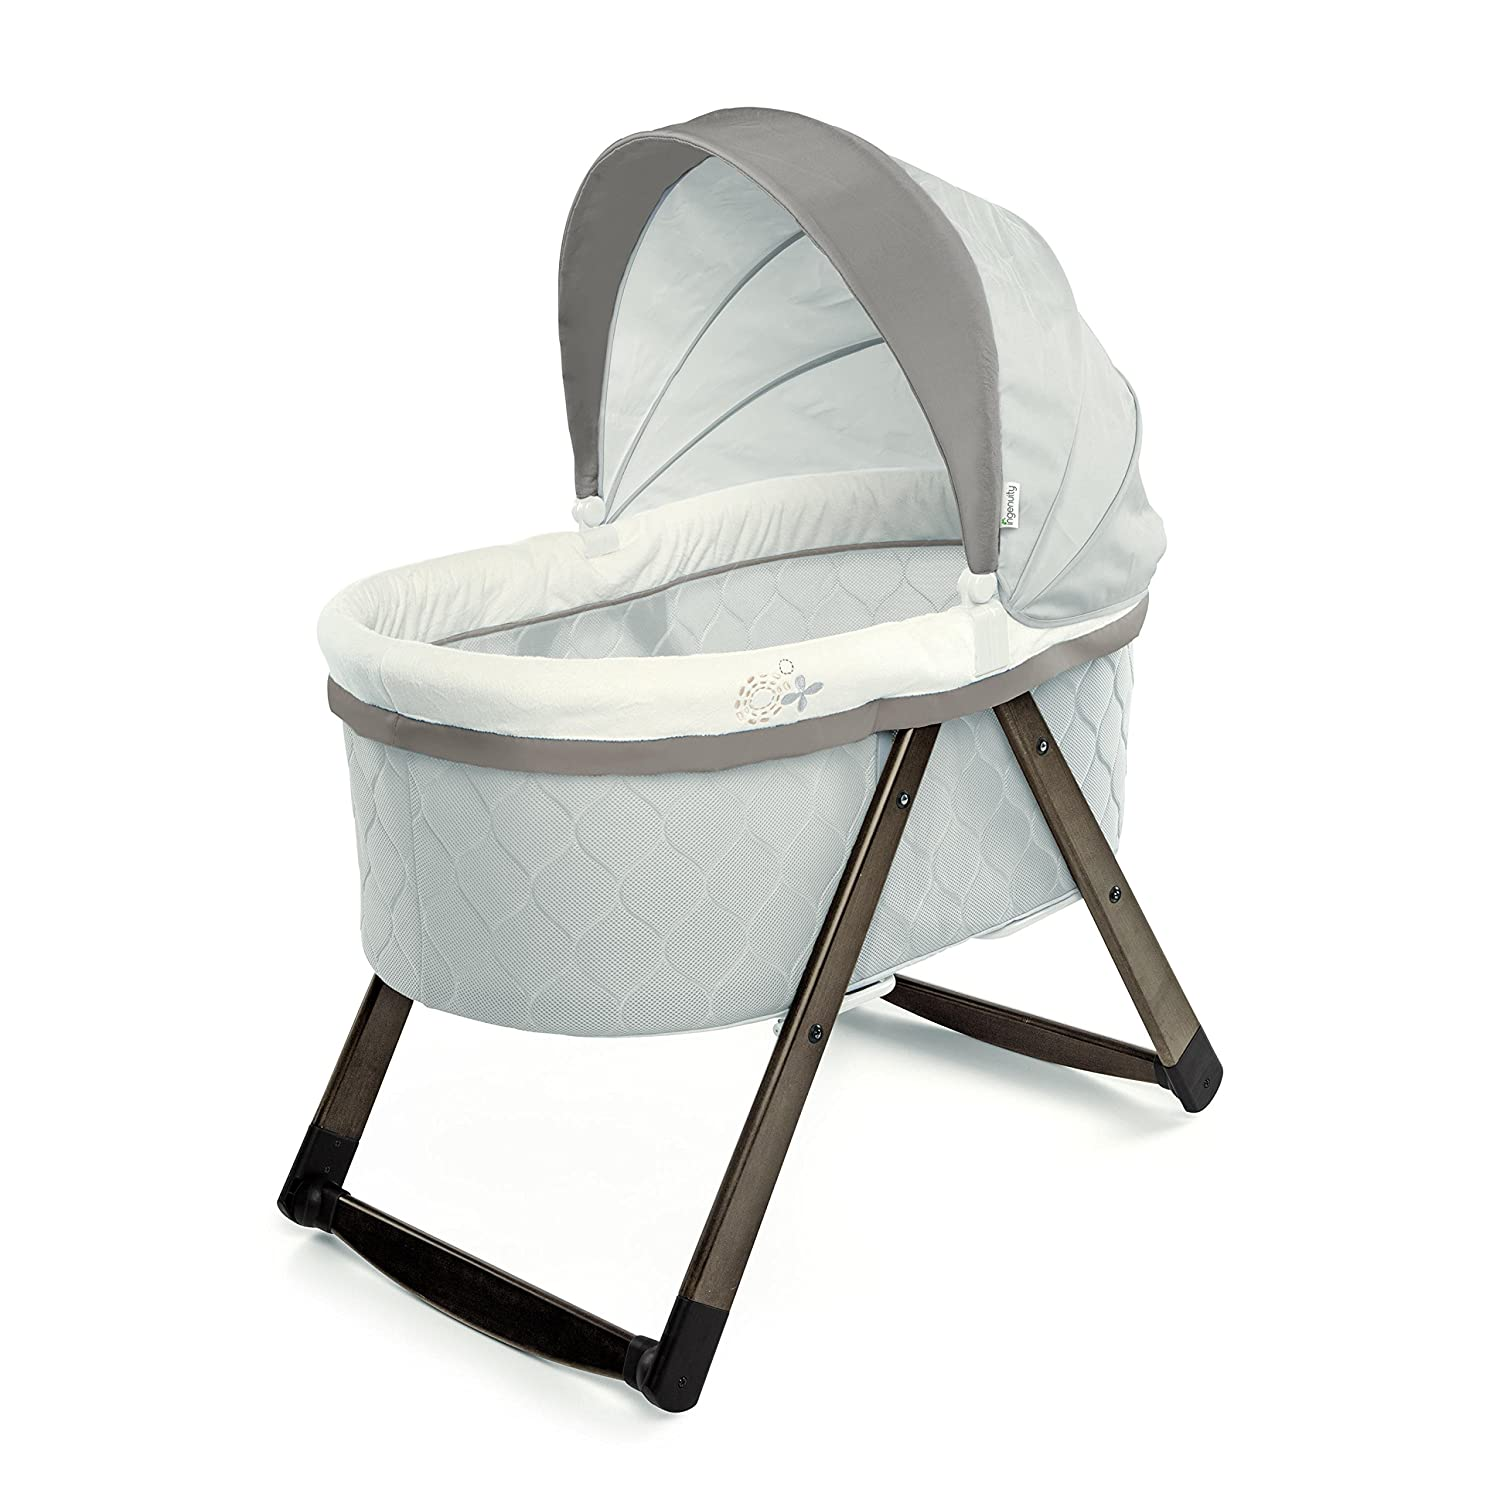 Ingenuity Foldaway Rocking Wood Bassinet – Carrington